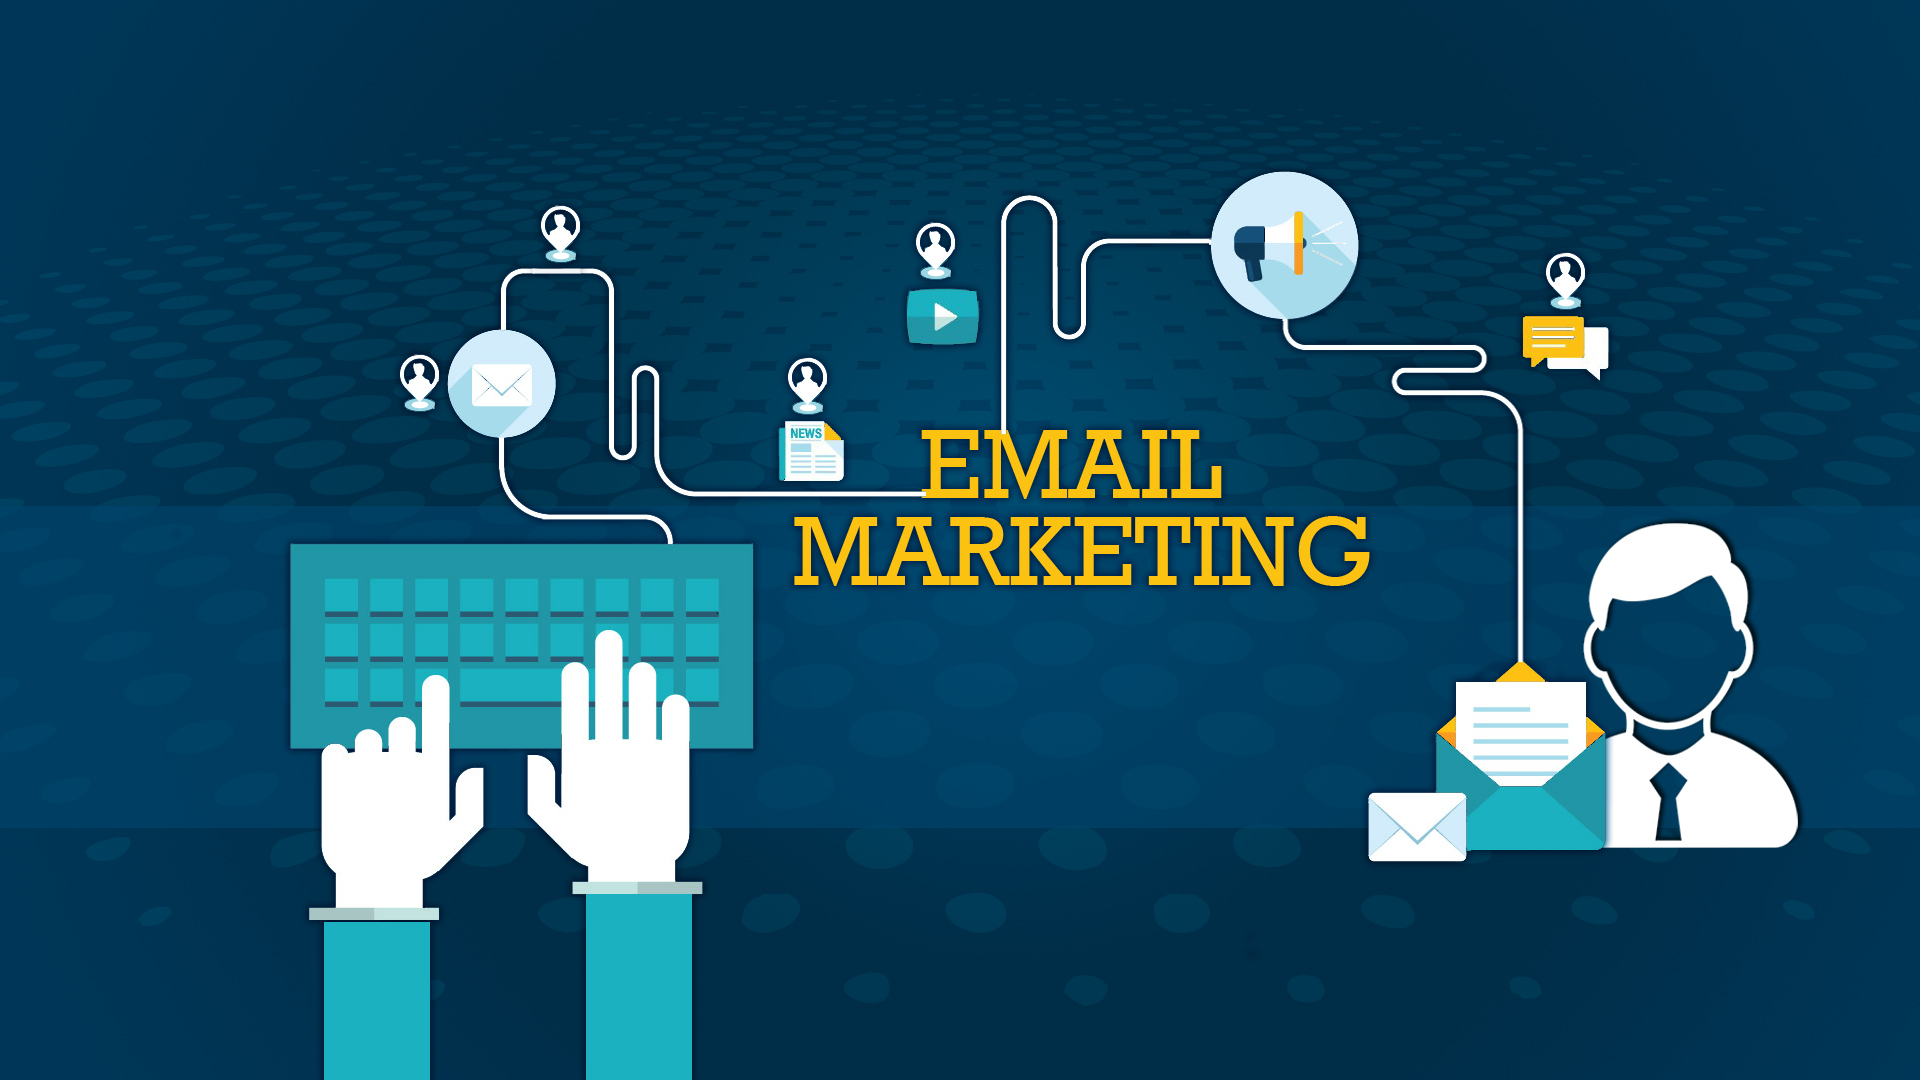 Email Marketing - Sending Out Your Posts